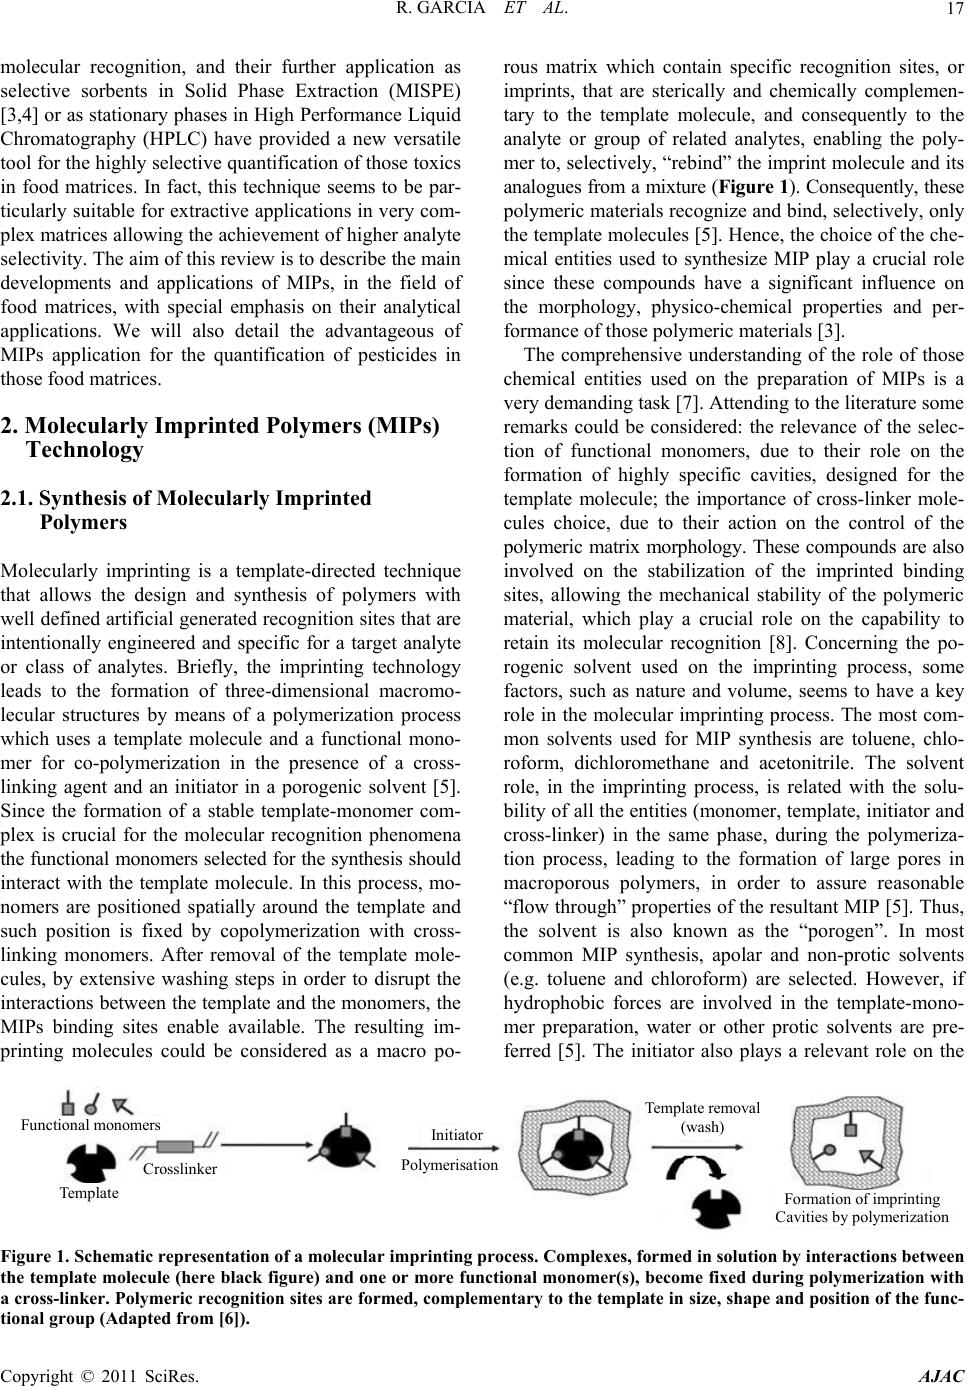 Application of Molecularly Imprinted Polymers for the Analysis of ...